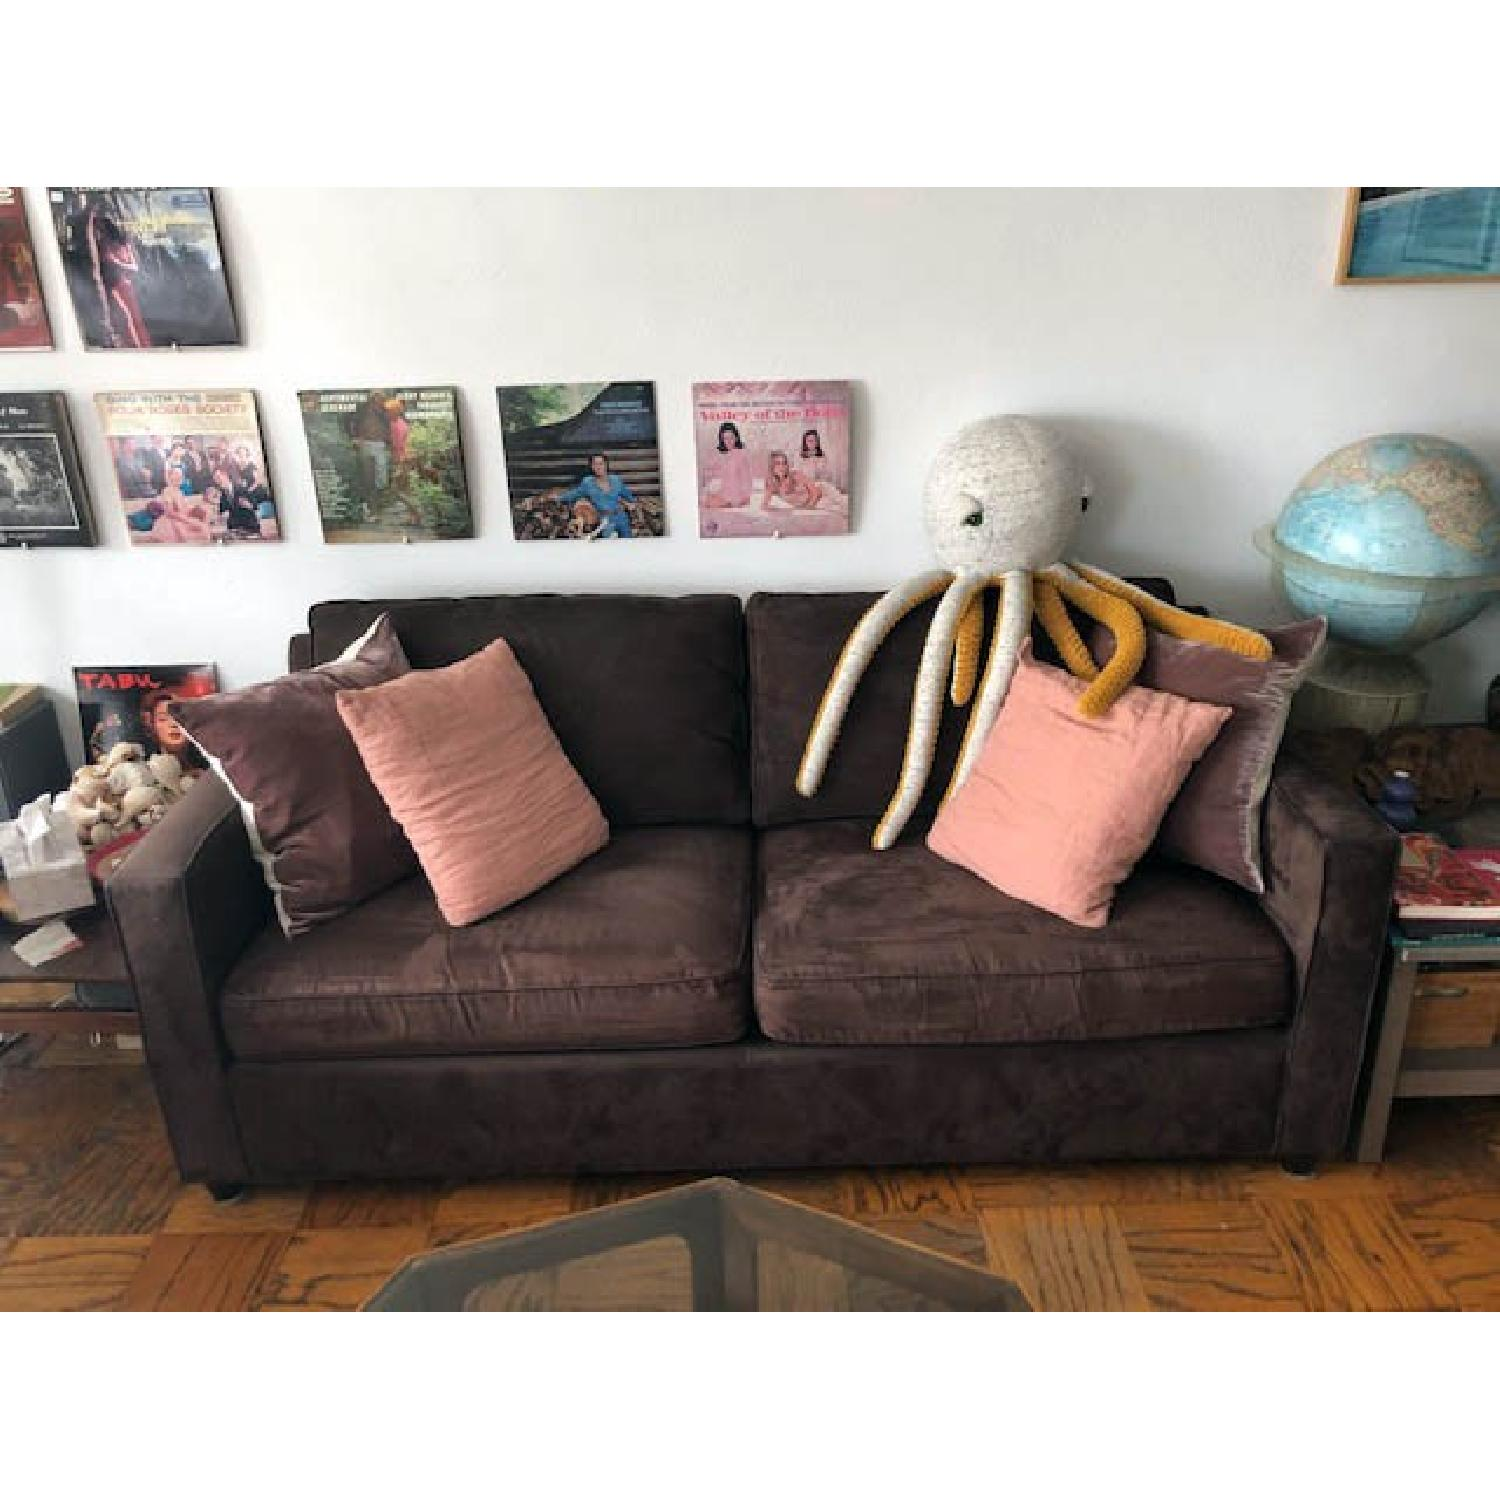 Crate & Barrel Barrett Sofa & Matching Armchair - image-3